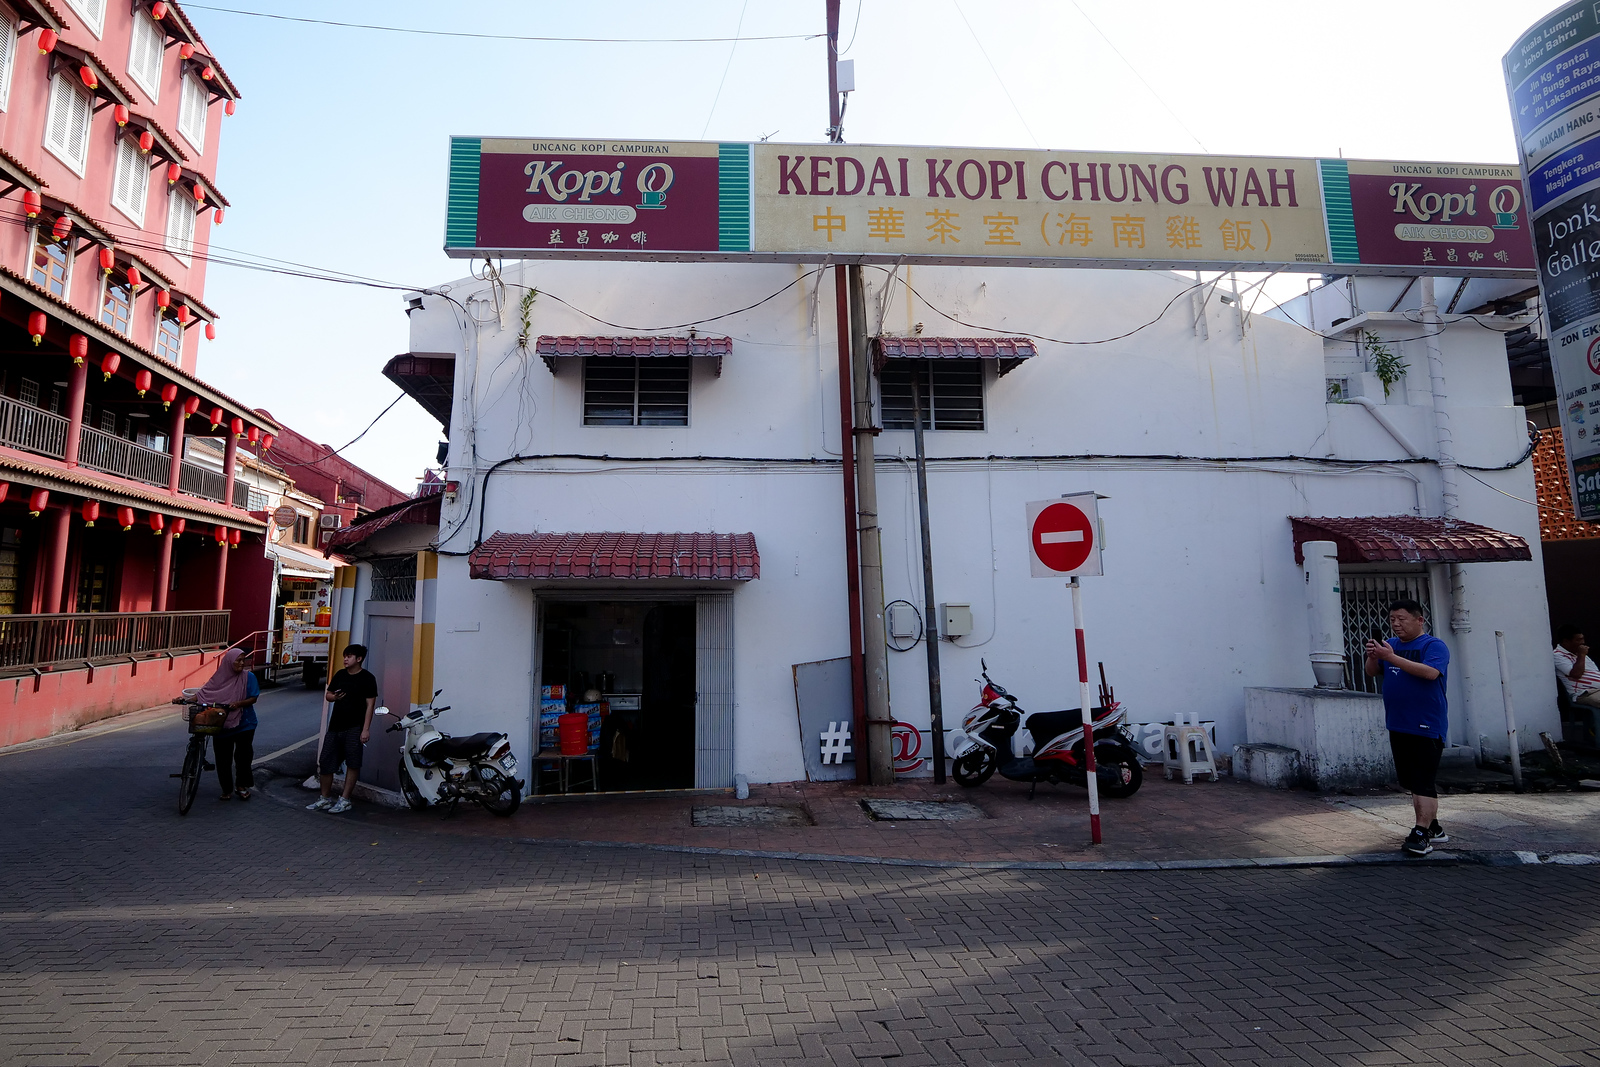 Kedai Kopi Chung Wah is some of the best food in Melaka